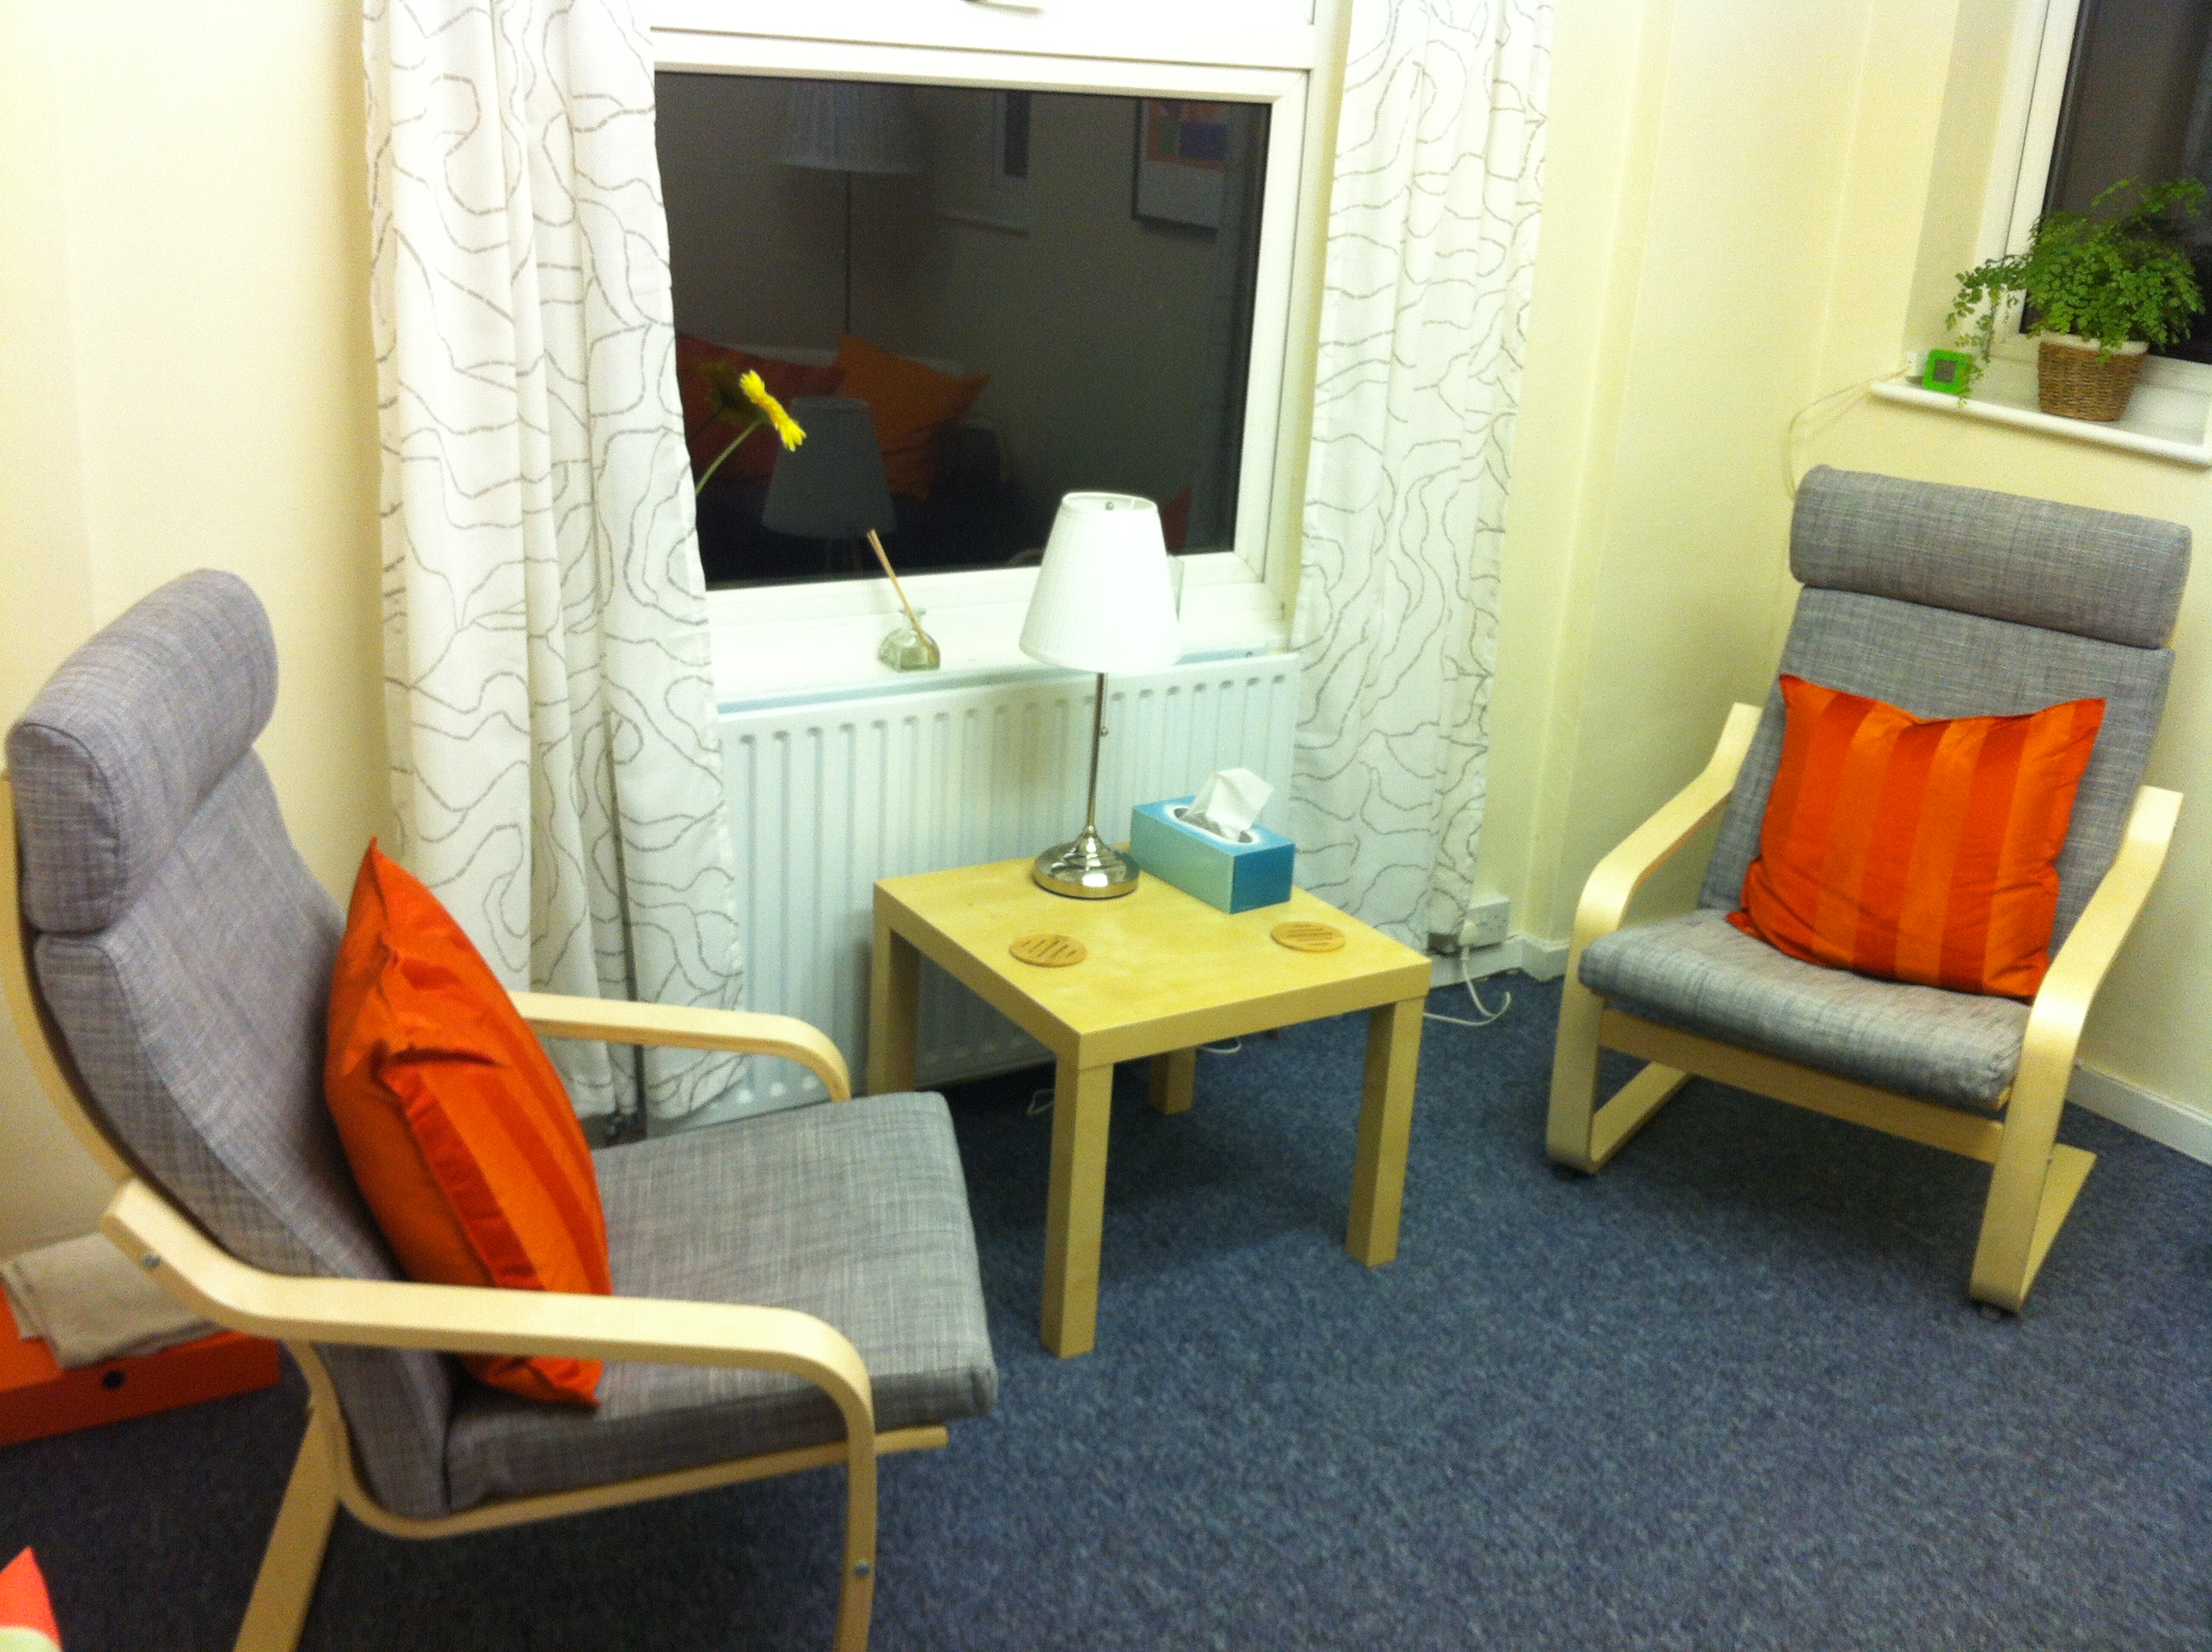 Counselling room in Hampton Hill, Middlesex